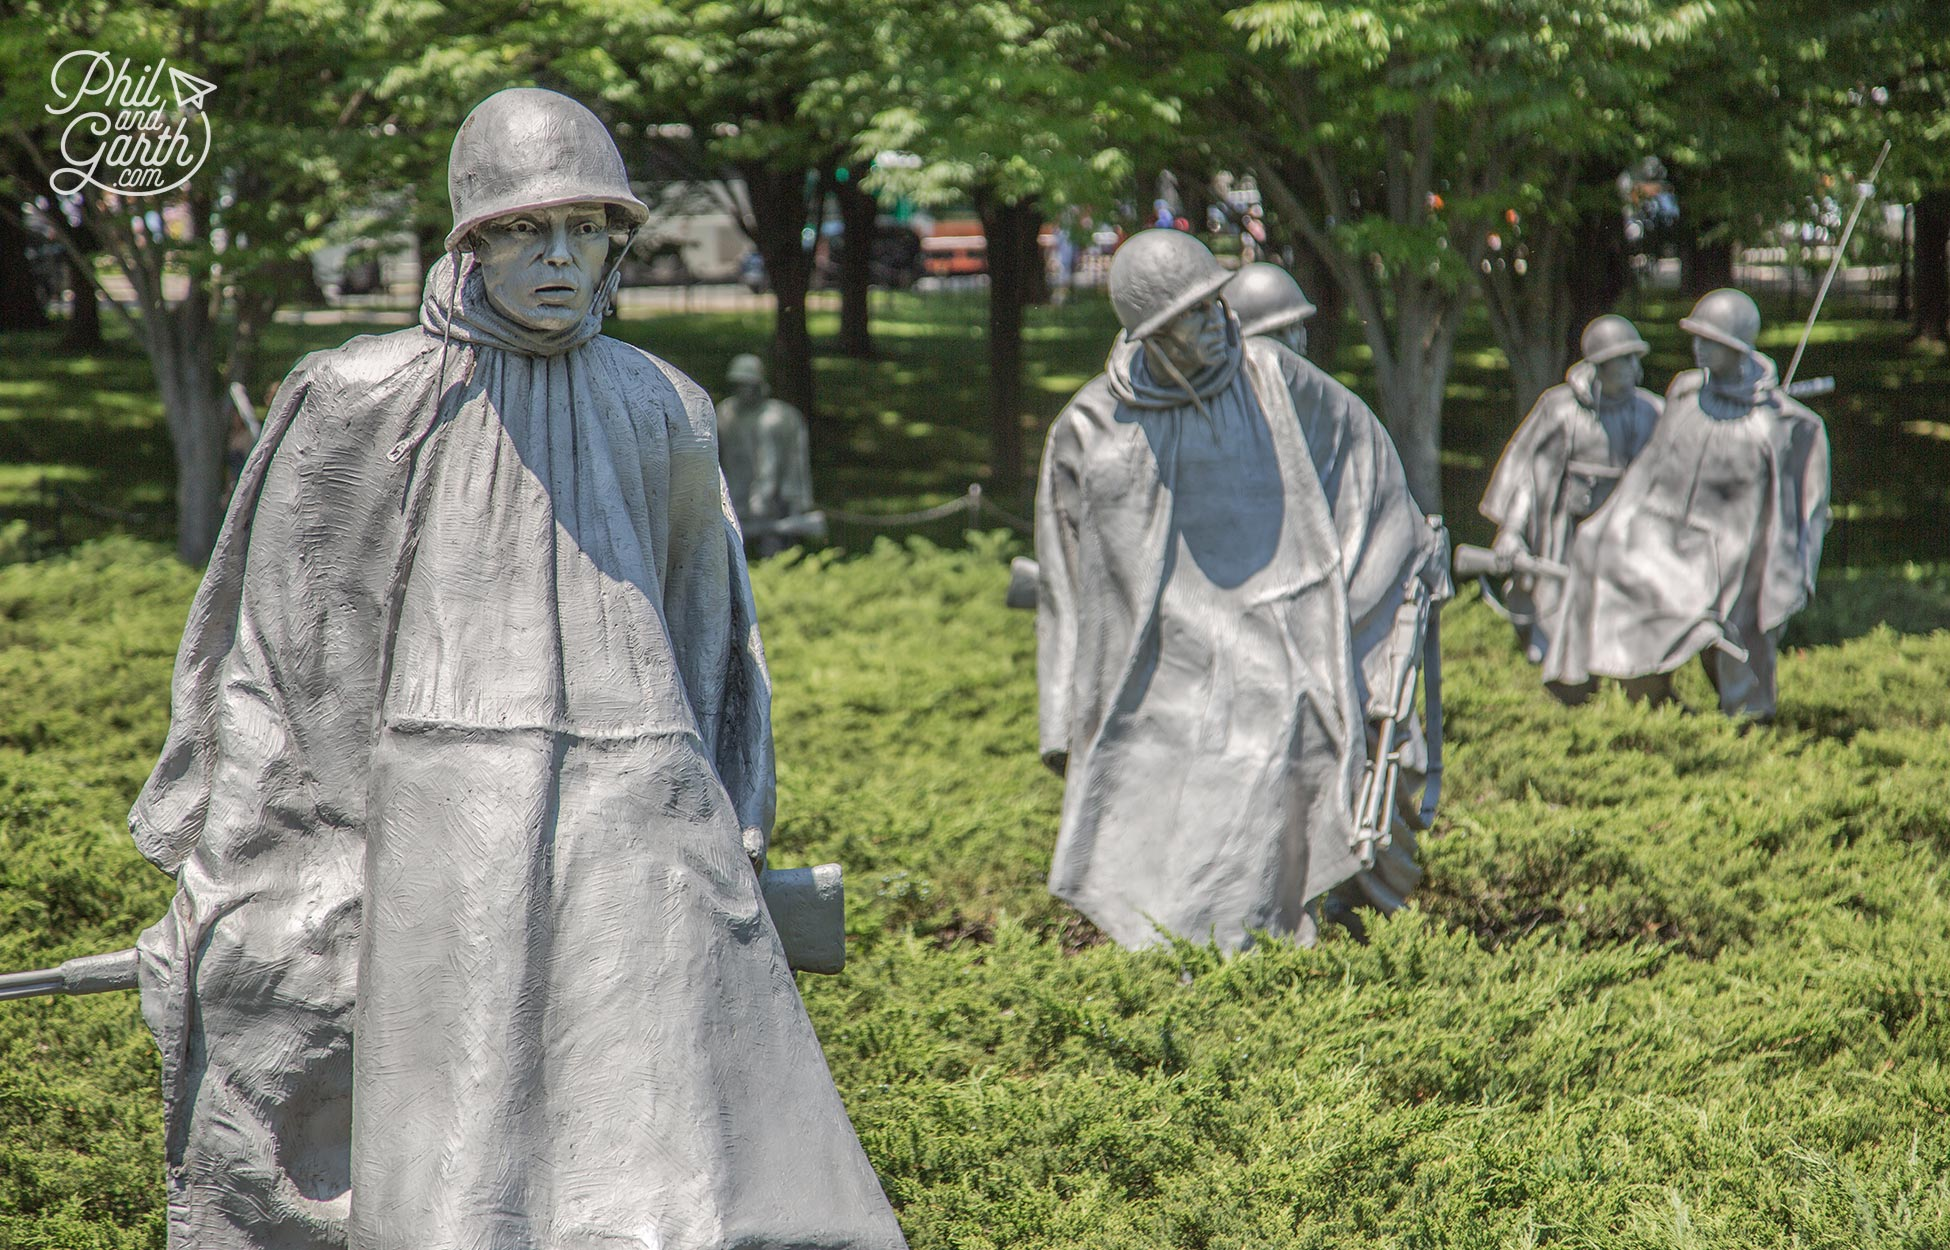 The statues are posed in formation looking in different directions